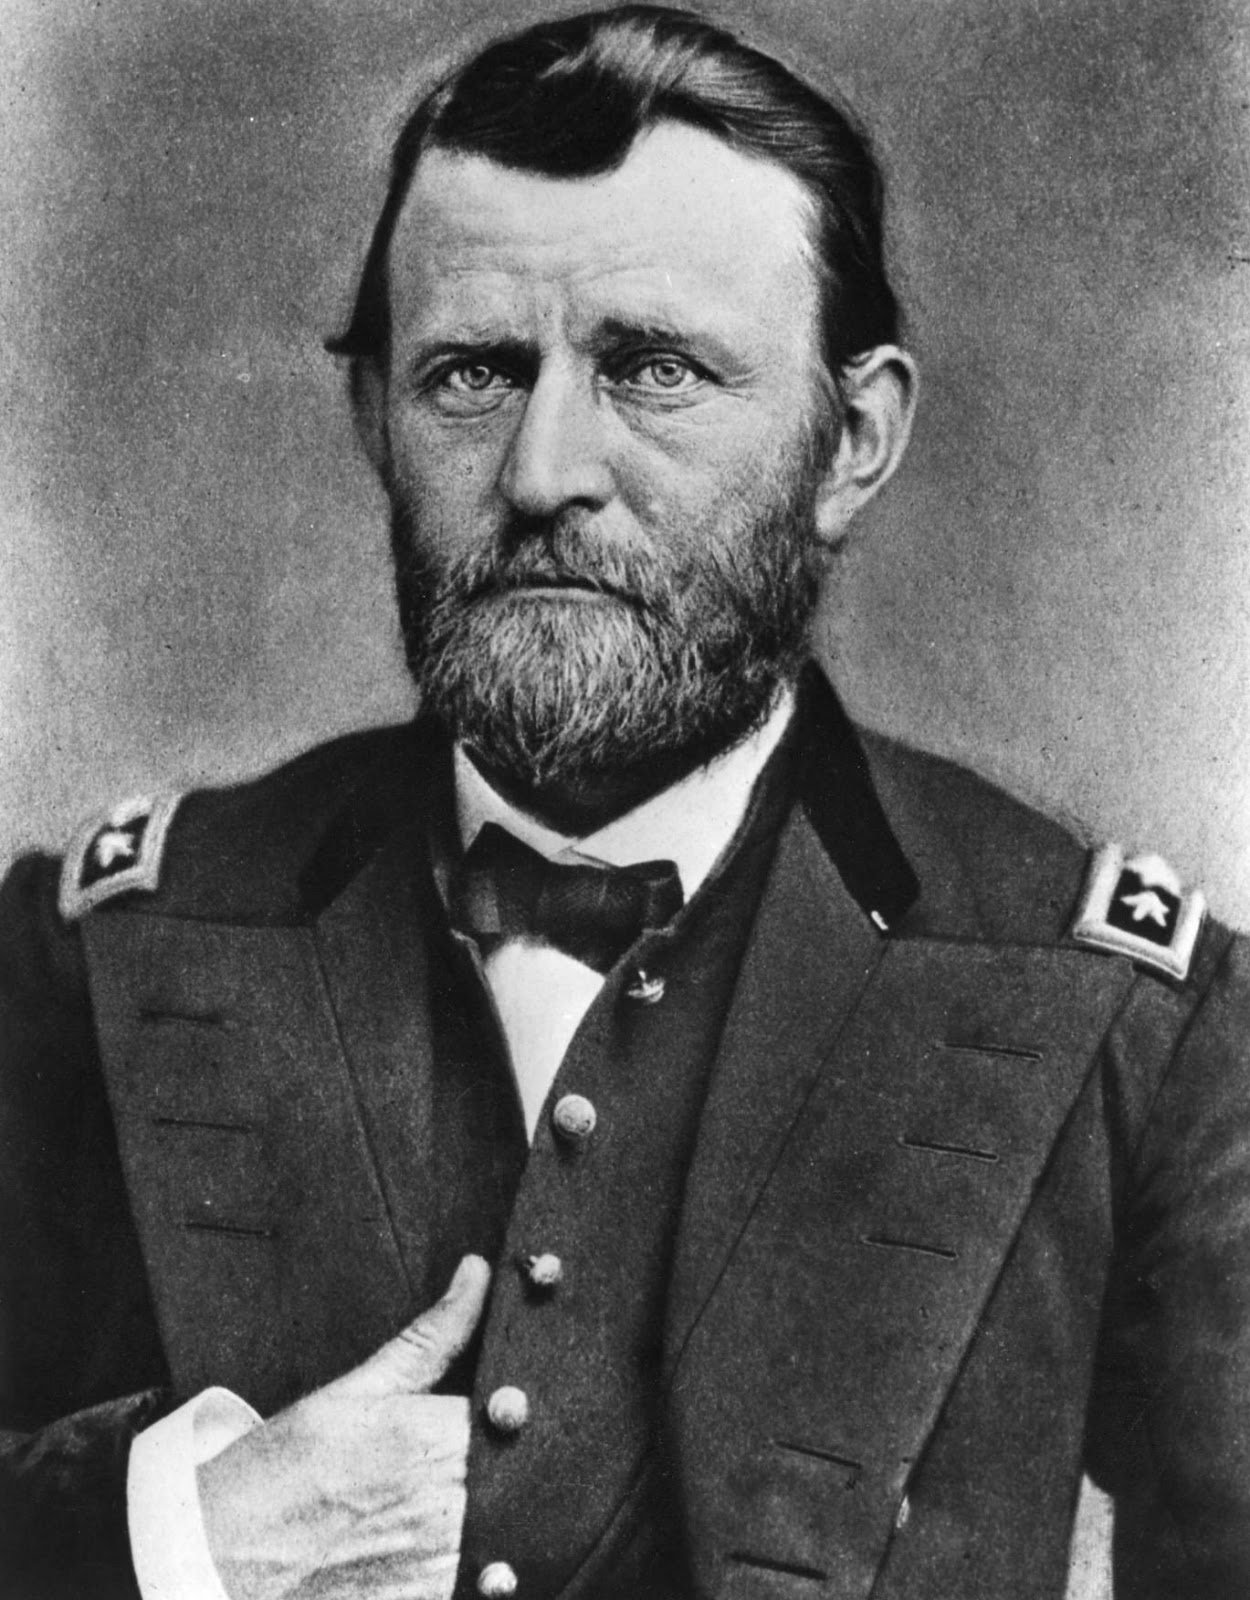 Ulysses S. Grant - Biography, Facts, Pictures and